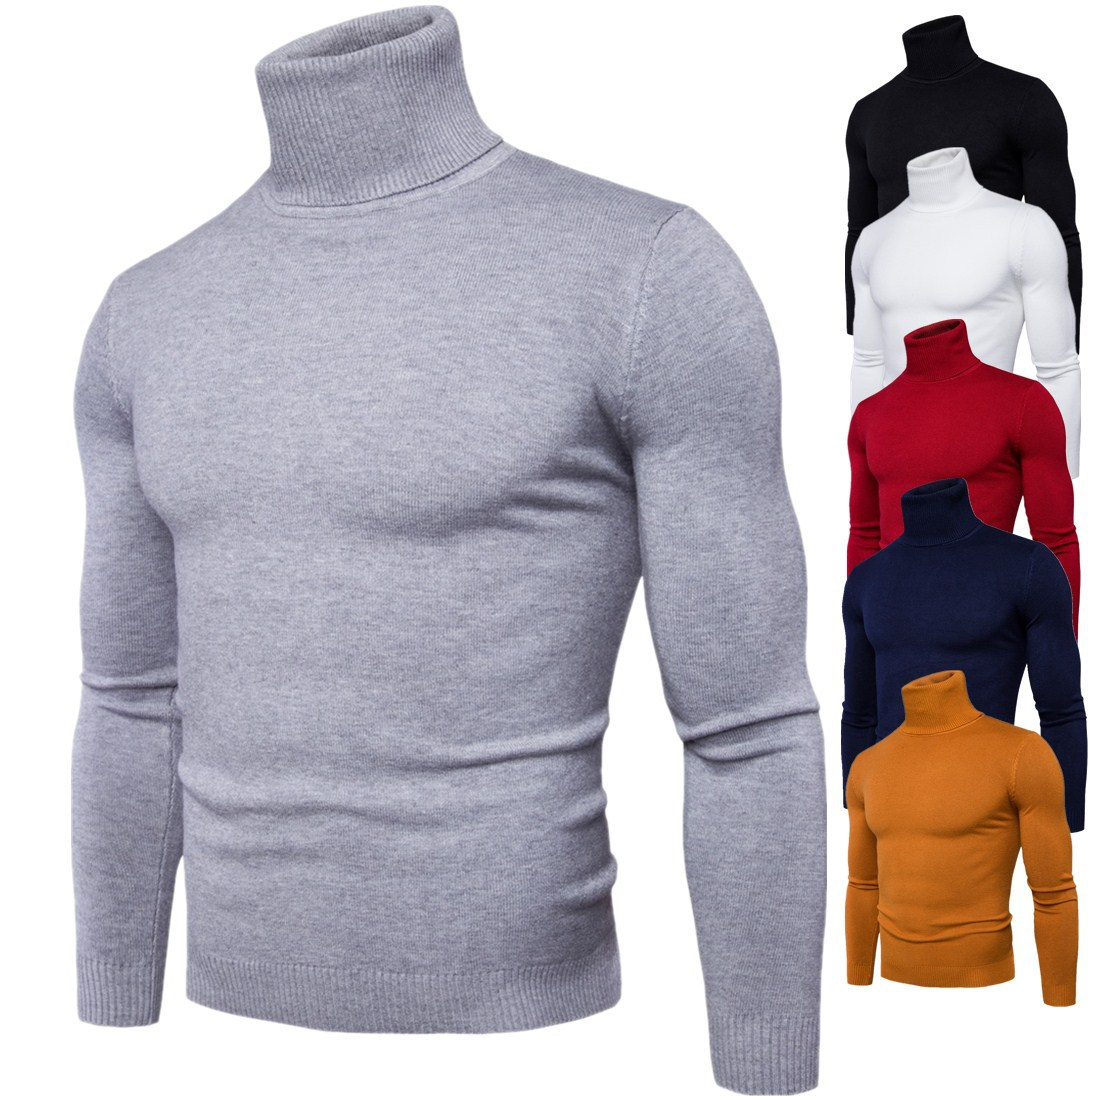 ZOGAA 2019 Casual High-Collar Knitted Sweater Large-Size Undercoat Solid Mens Sweaters 2019 Turtleneck Warm Sweater 6 Colors